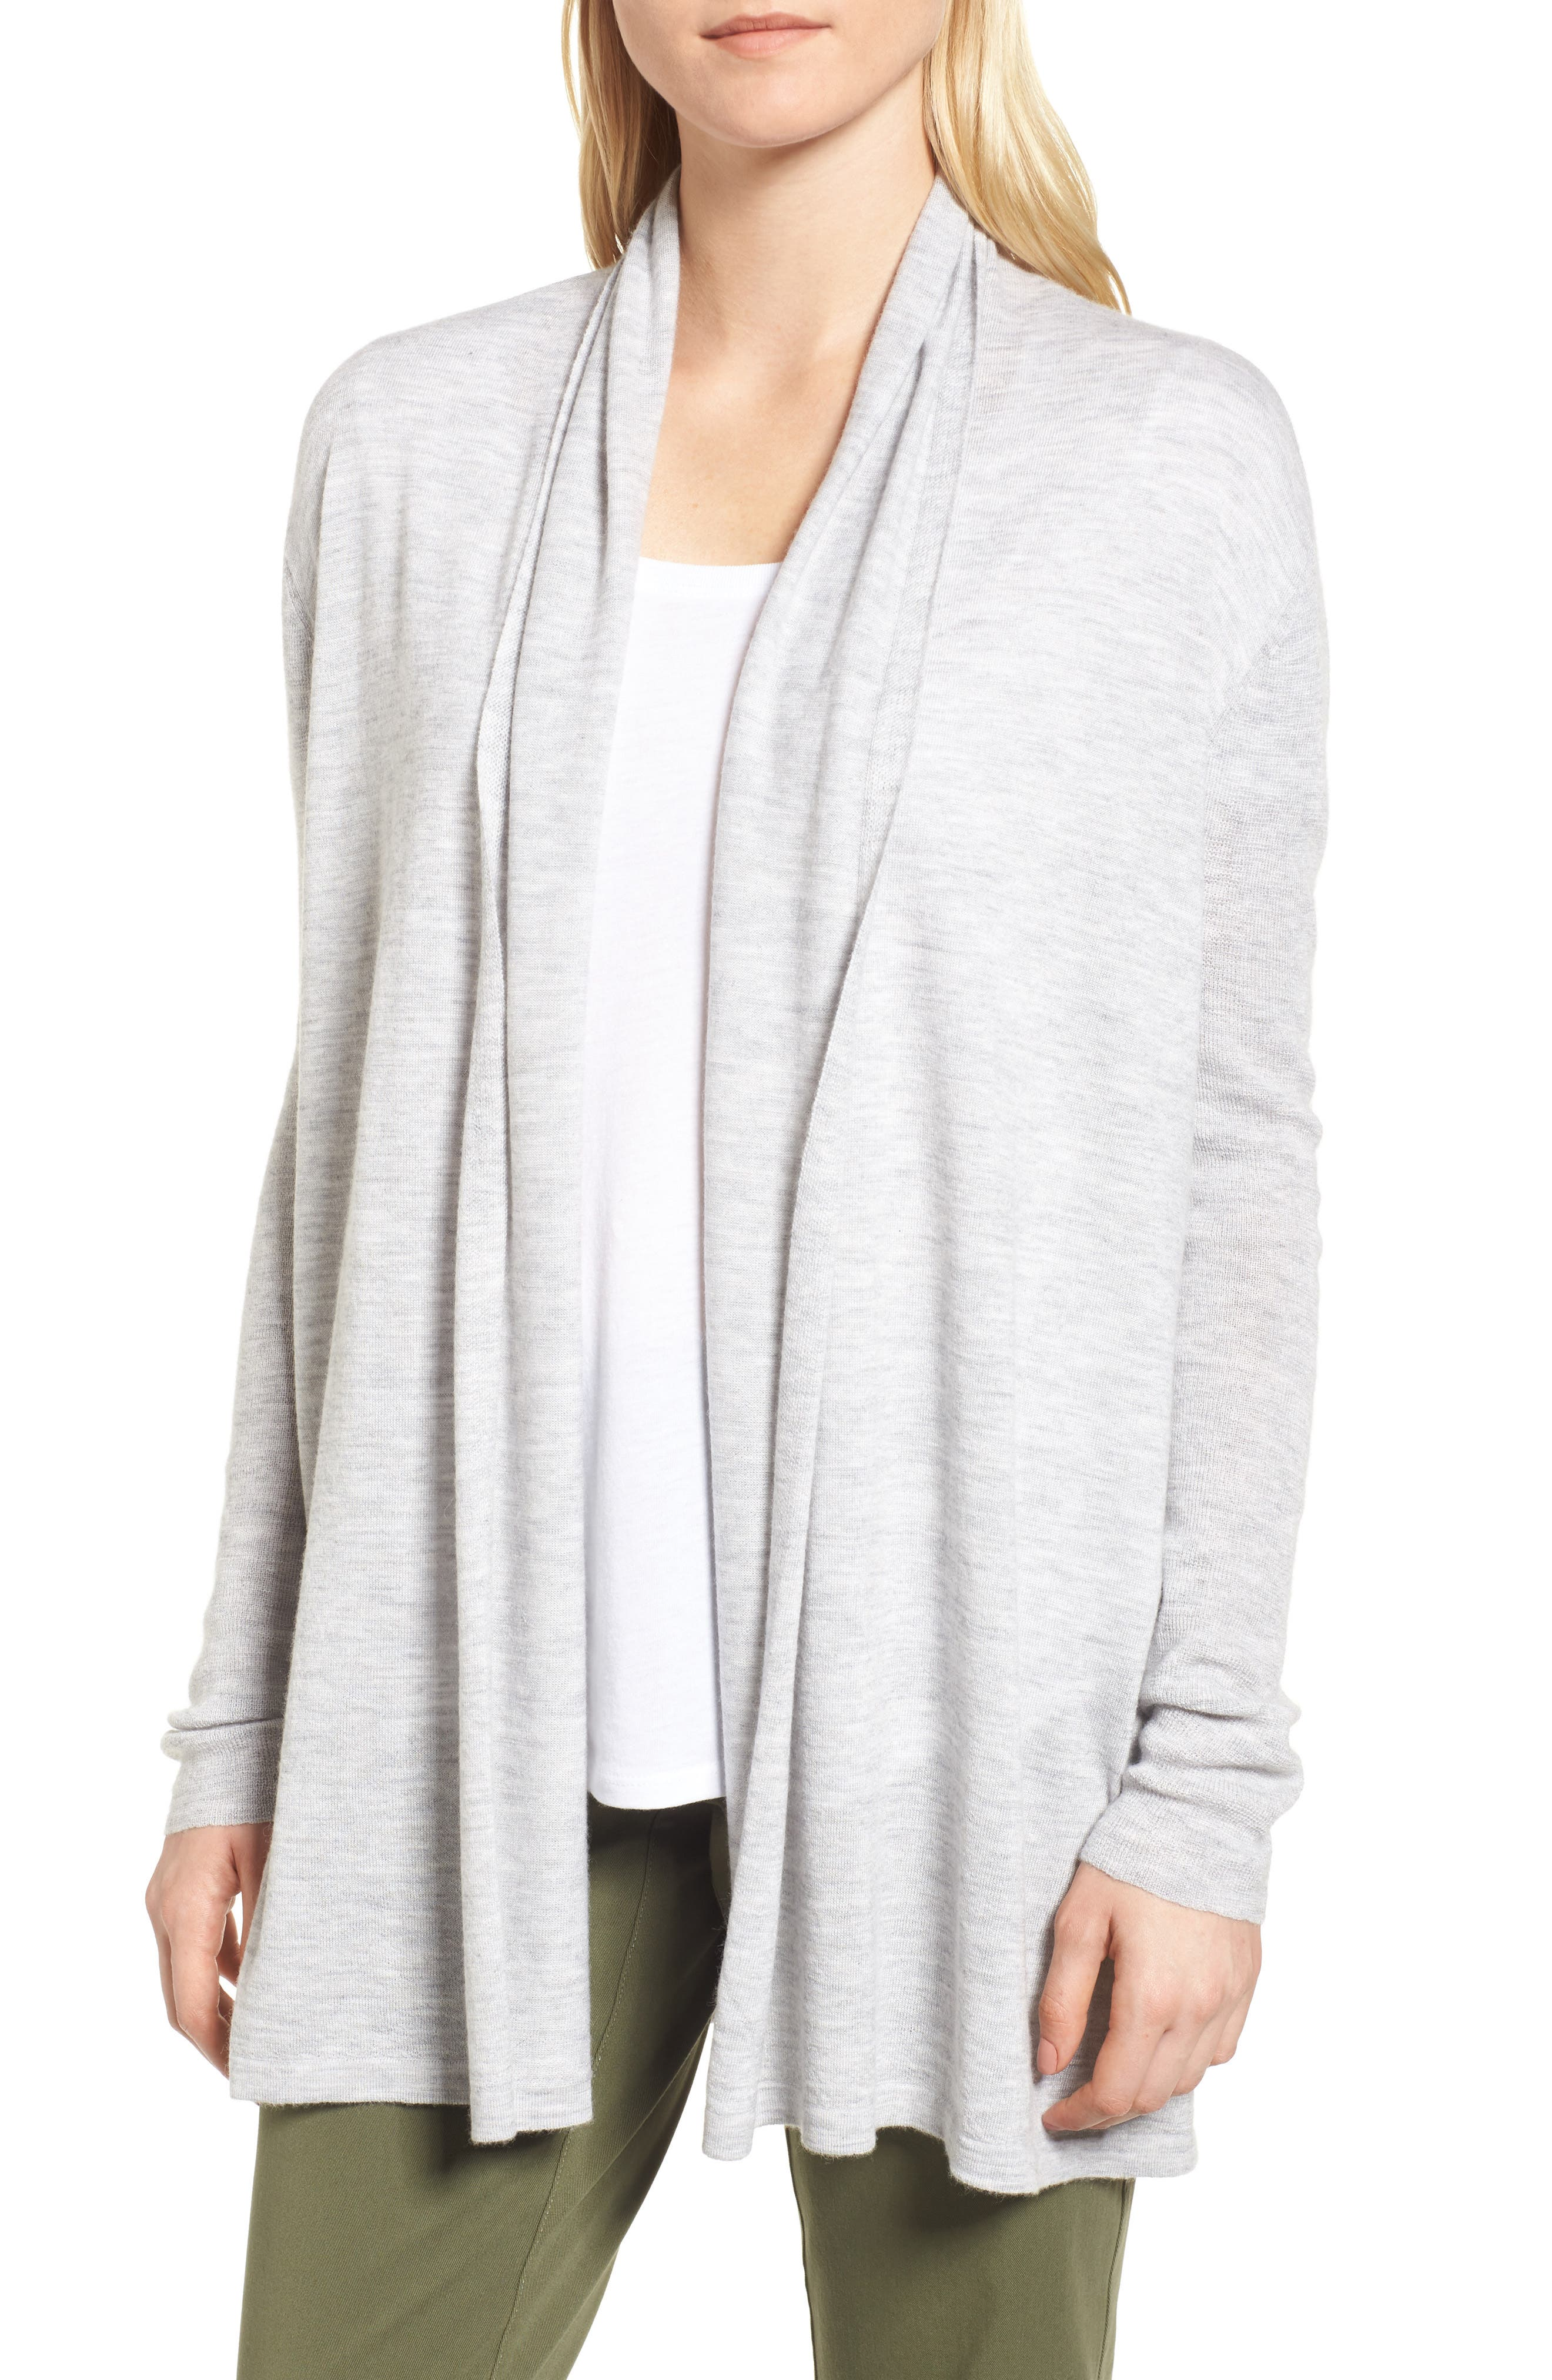 Cashmere Cardigan,                             Main thumbnail 1, color,                             Grey Clay Heather